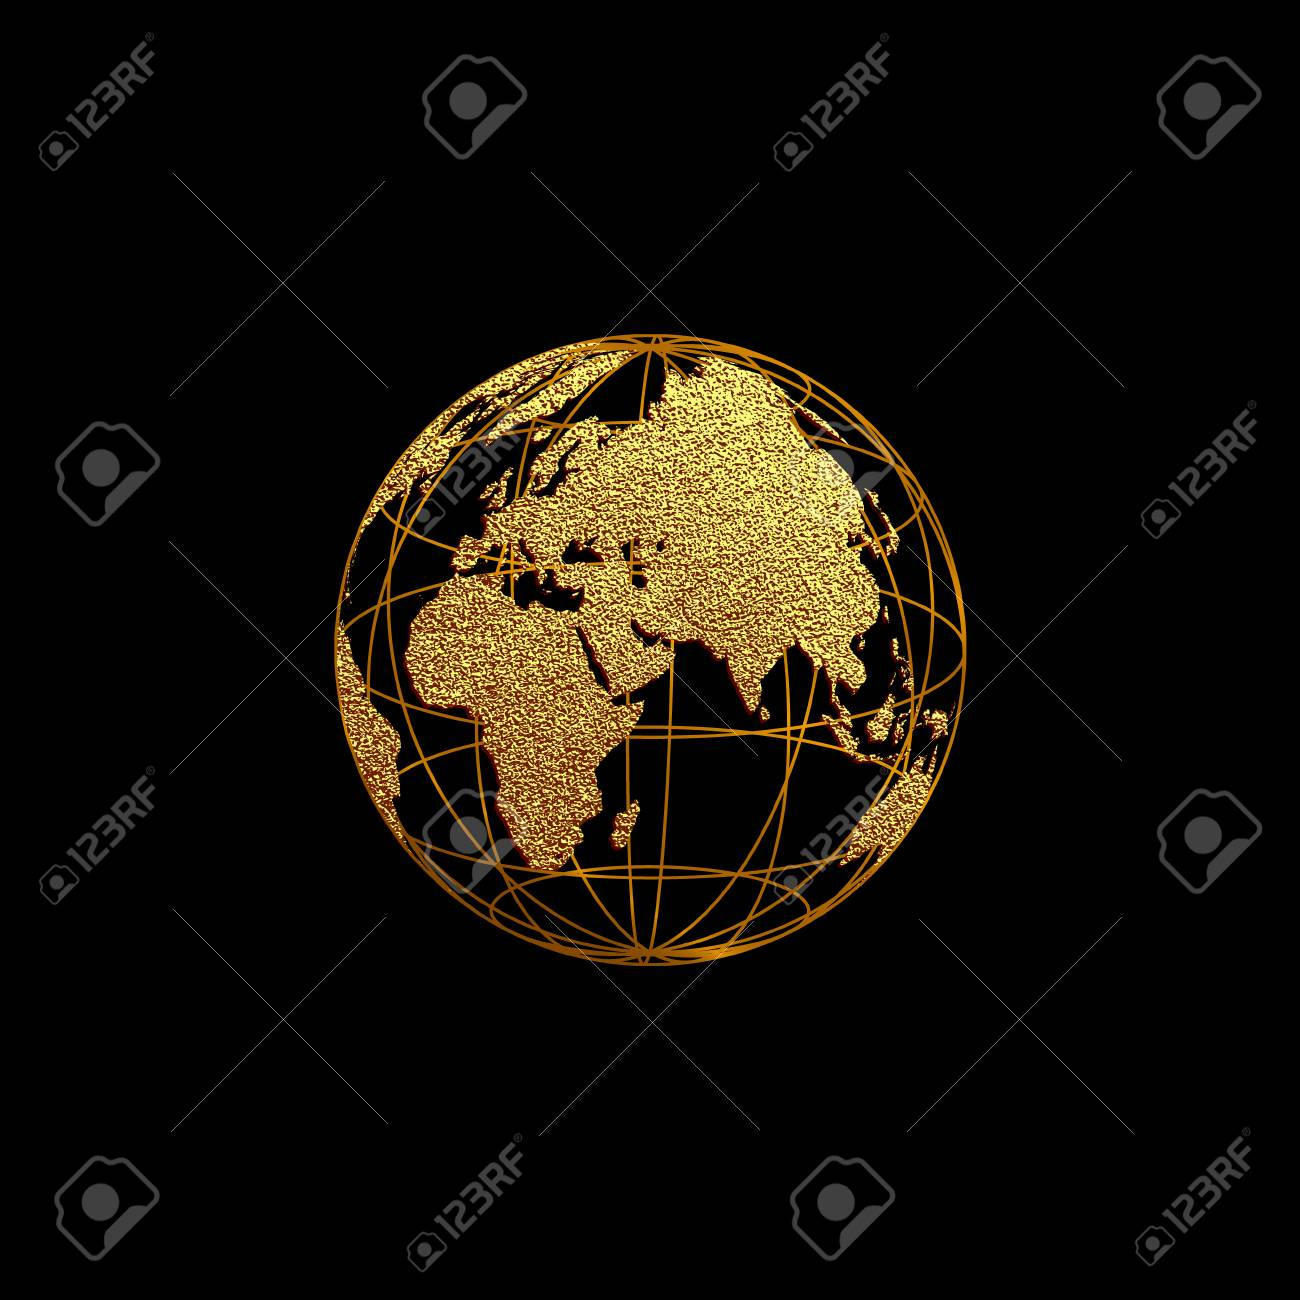 Creative gold map of the world vector illustration golden template creative gold map of the world vector illustration golden template design for media design gumiabroncs Images